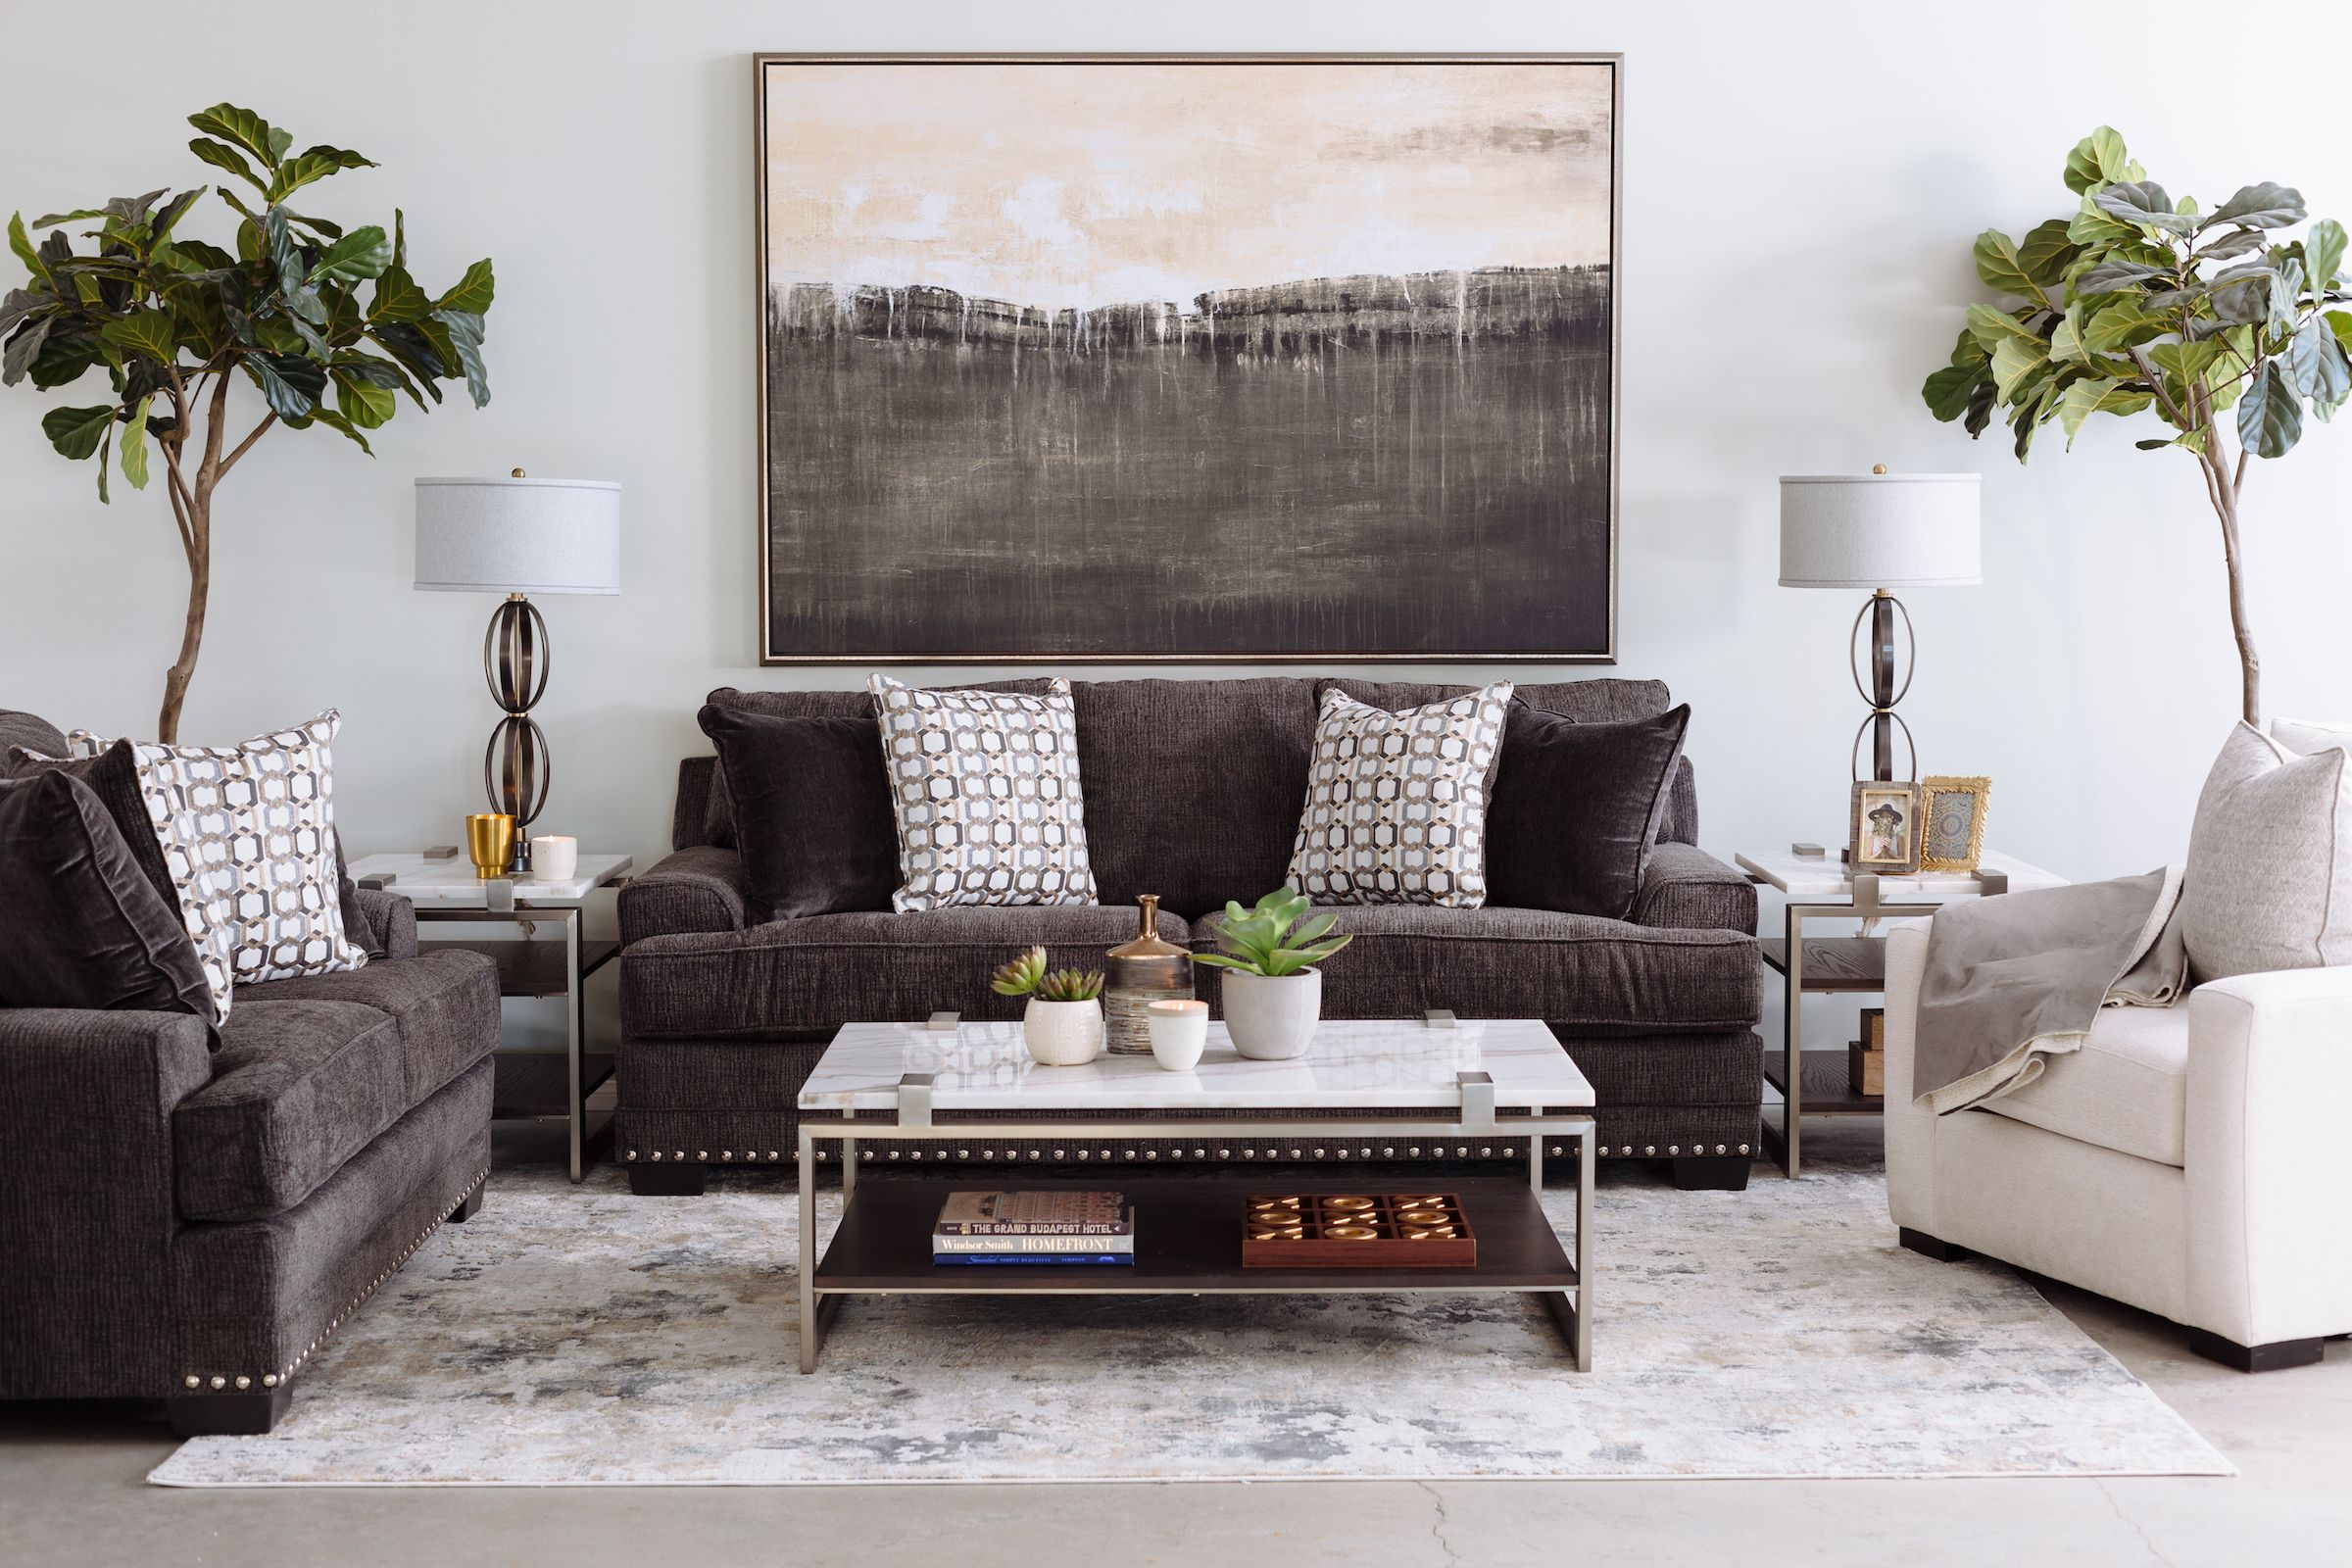 Nailhead Accented Contemporary Sofa In Charcoal Oil Painting Abstract Abstract Painting Large Abstract Painting